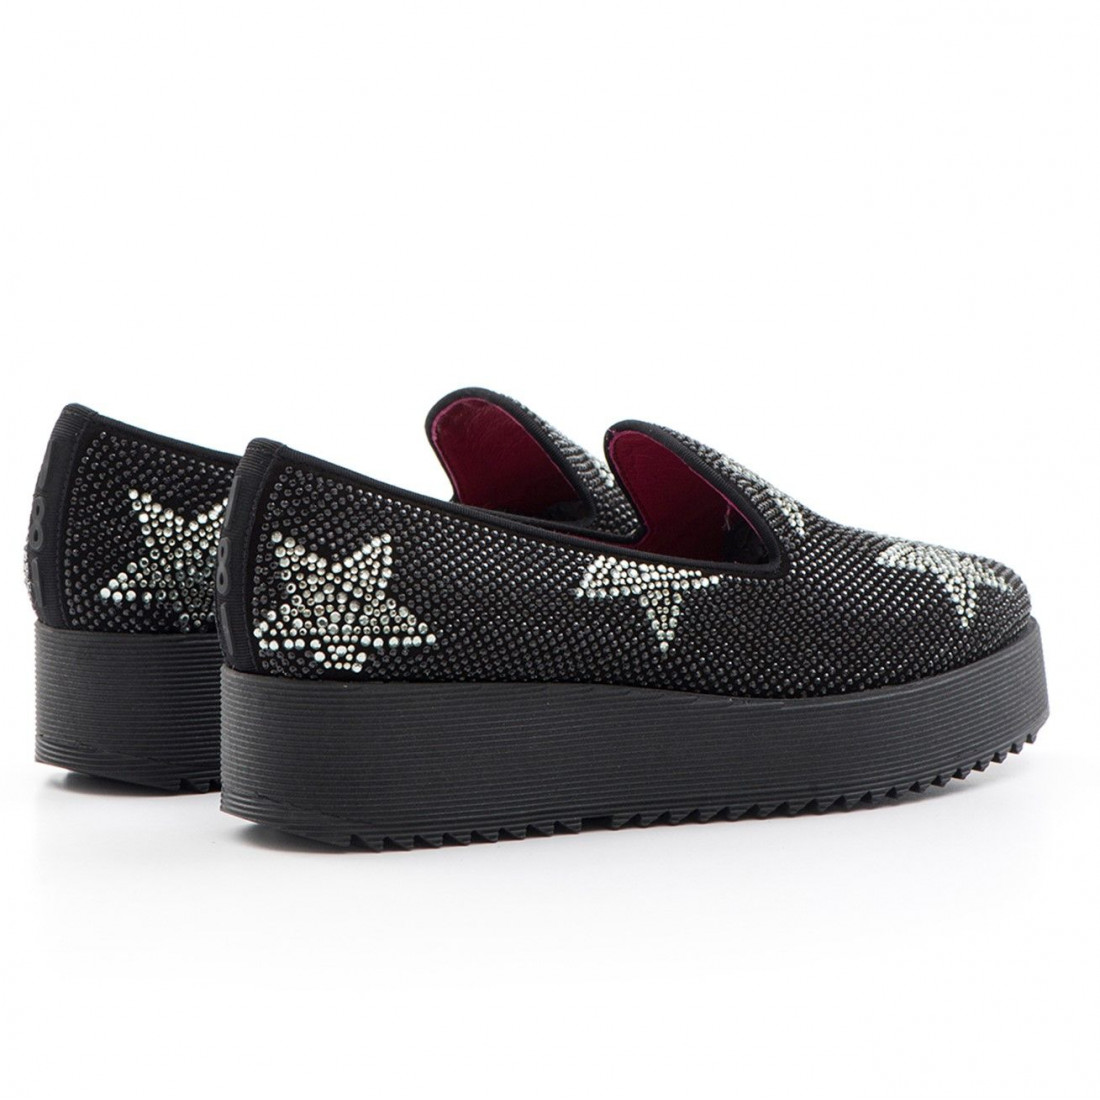 slip on woman 181 manitu suede blkstar blkdiam 1159